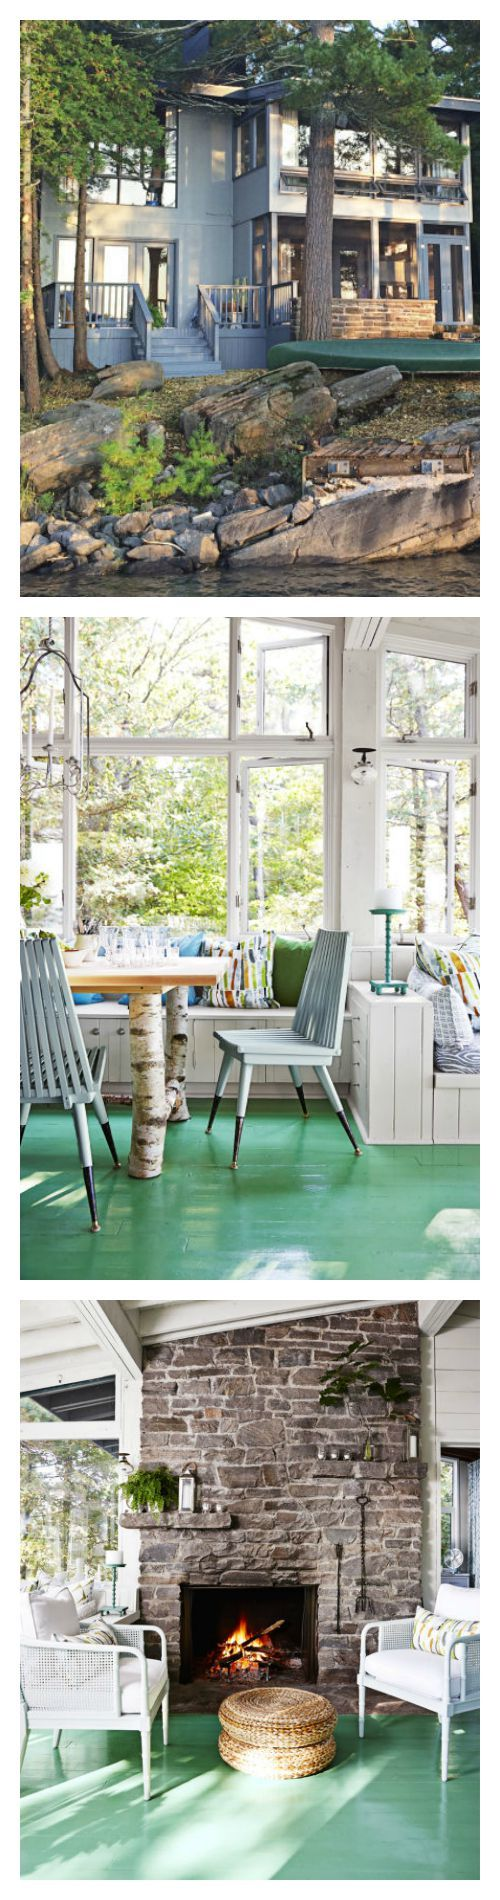 Designer Sarah Richardson reinvented a 1950s cottage on Lake Huron with fresh budget-savvy tricks. This cozy lake house got a seriously impressive makeover that will inspire your to take on a renovation in your own home!